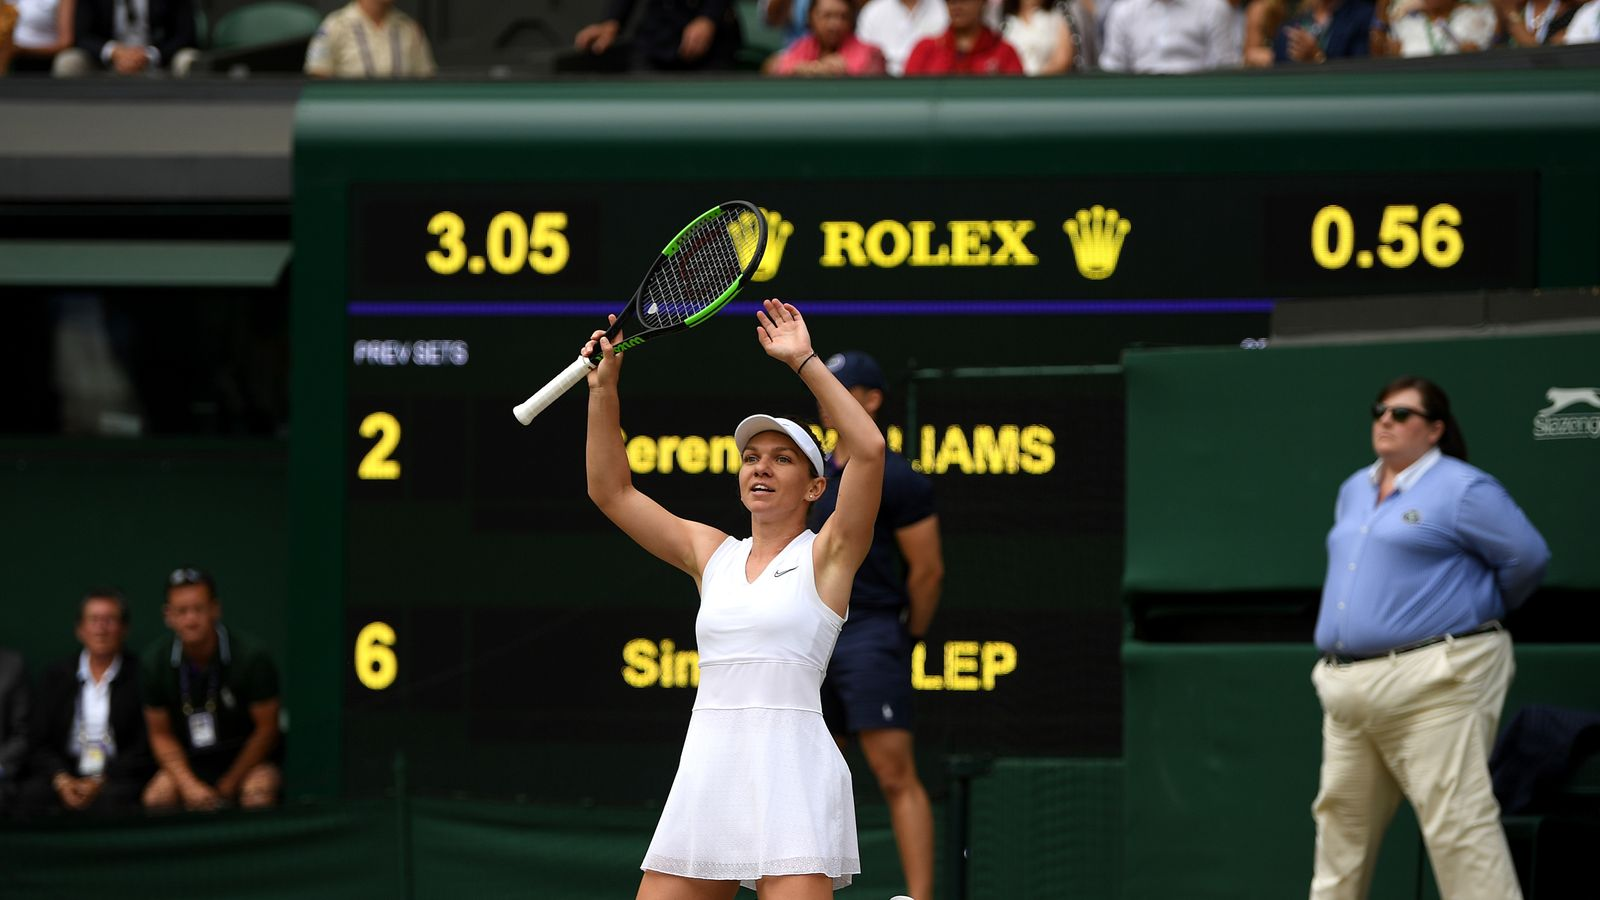 Simona Halep beats Serena Williams to win first Wimbledon ...